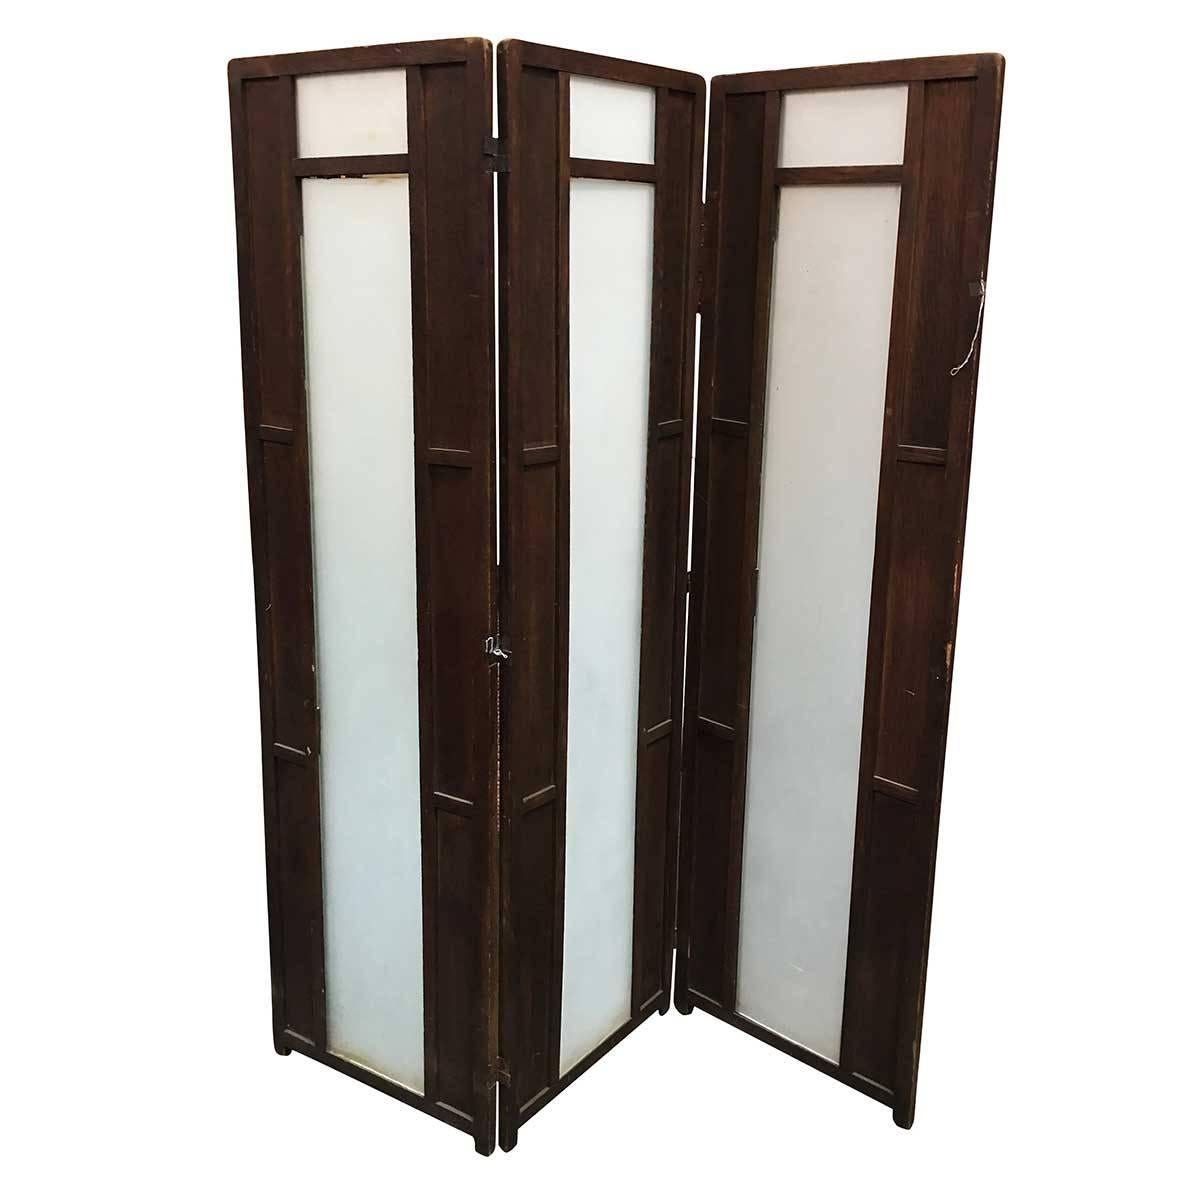 Art Deco Frosted Glass and Oak Slat Folding Screen Room Divider